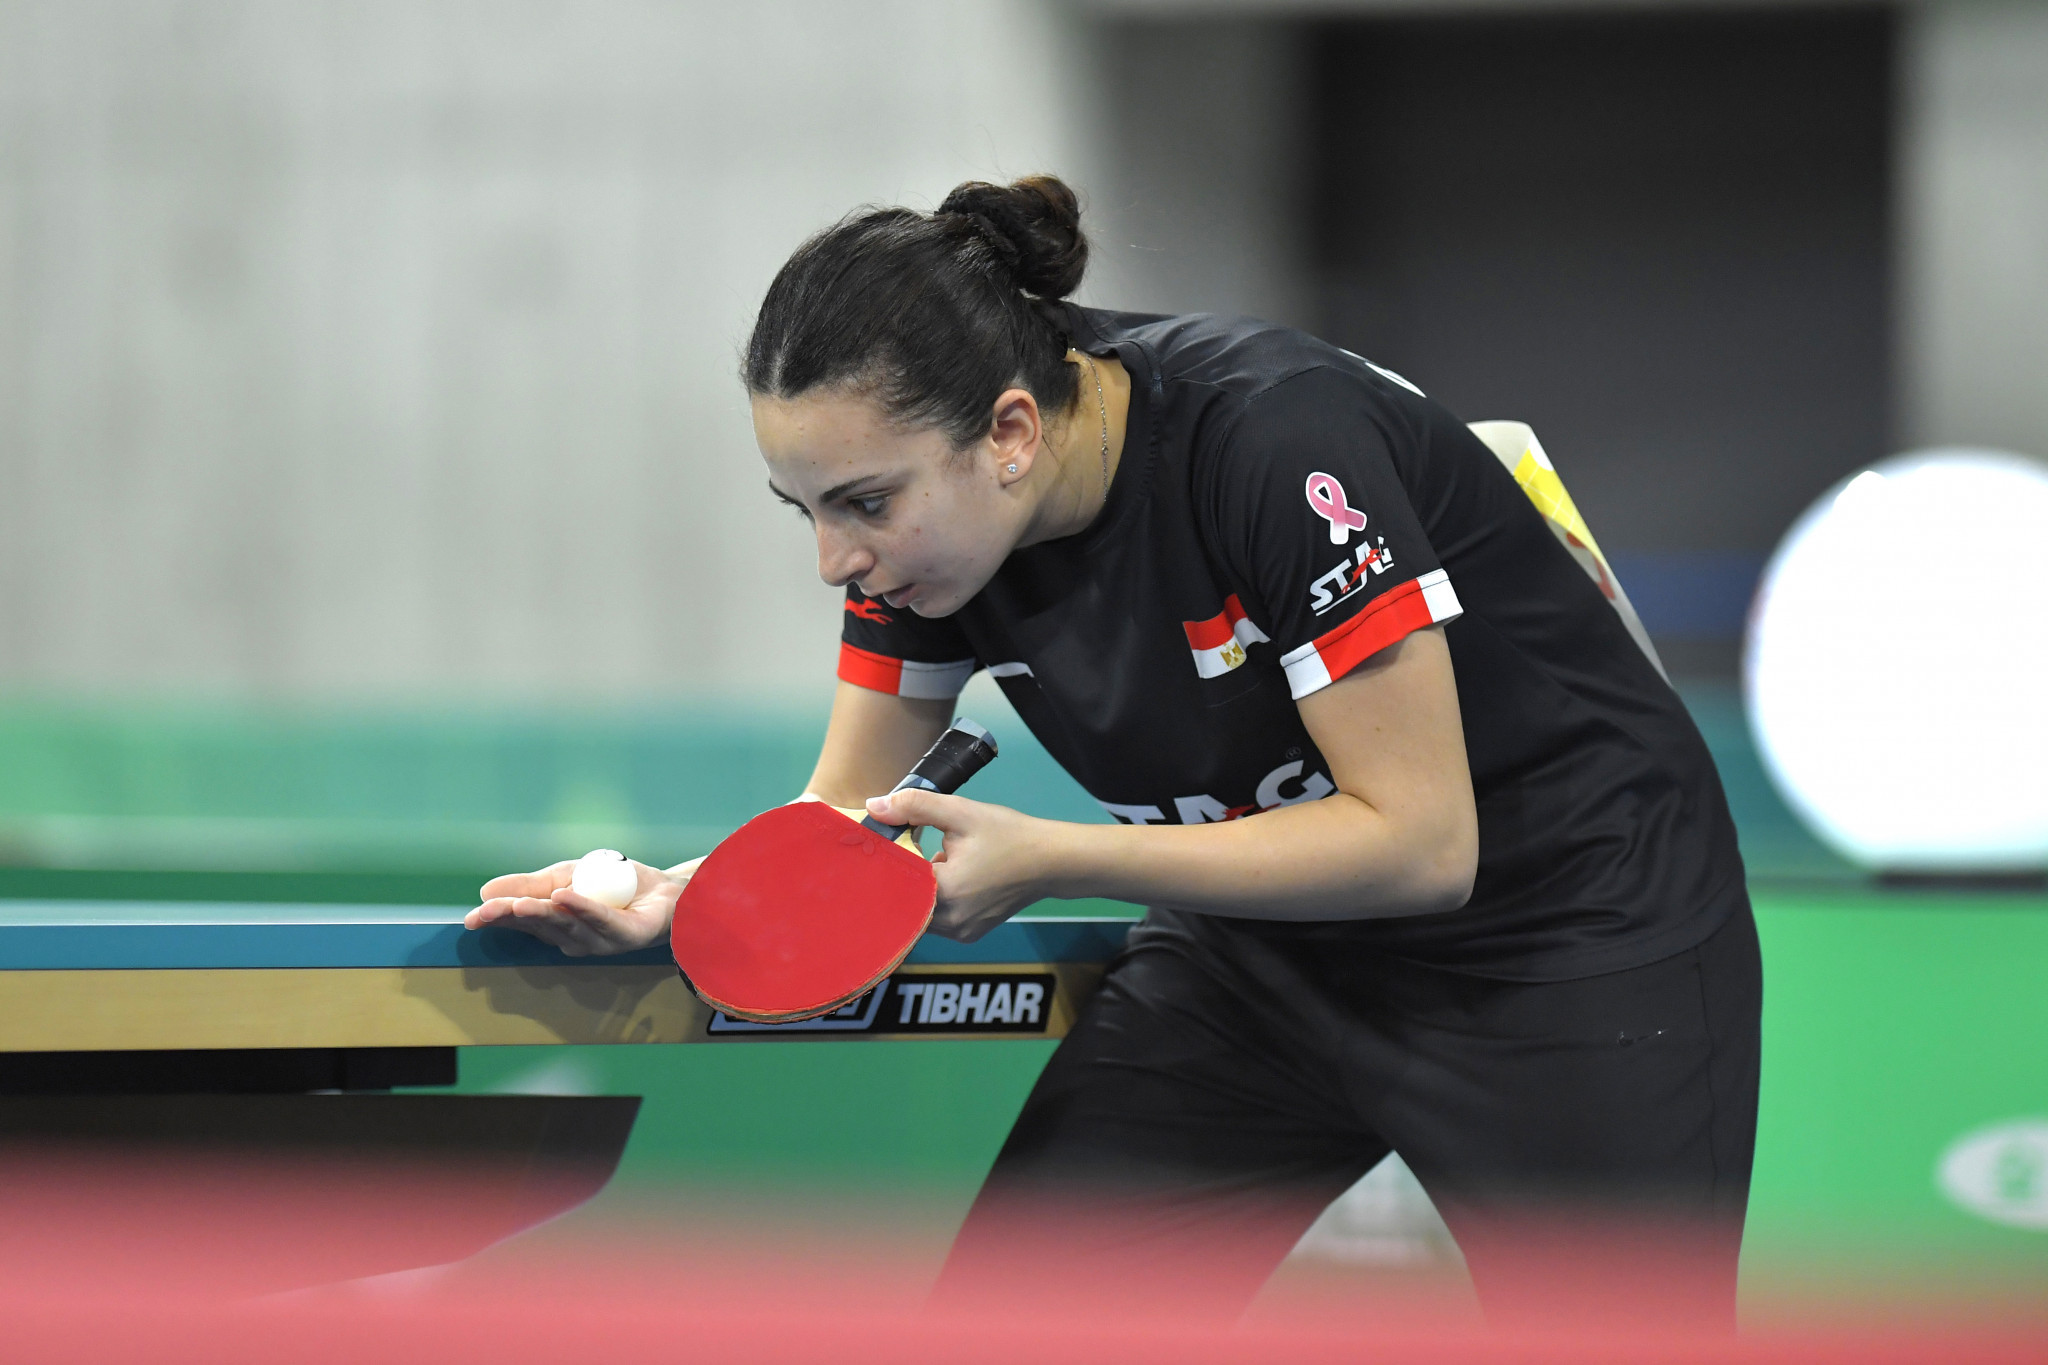 Meshref aiming for fourth consecutive title at ITTF Africa Top 16 Cup